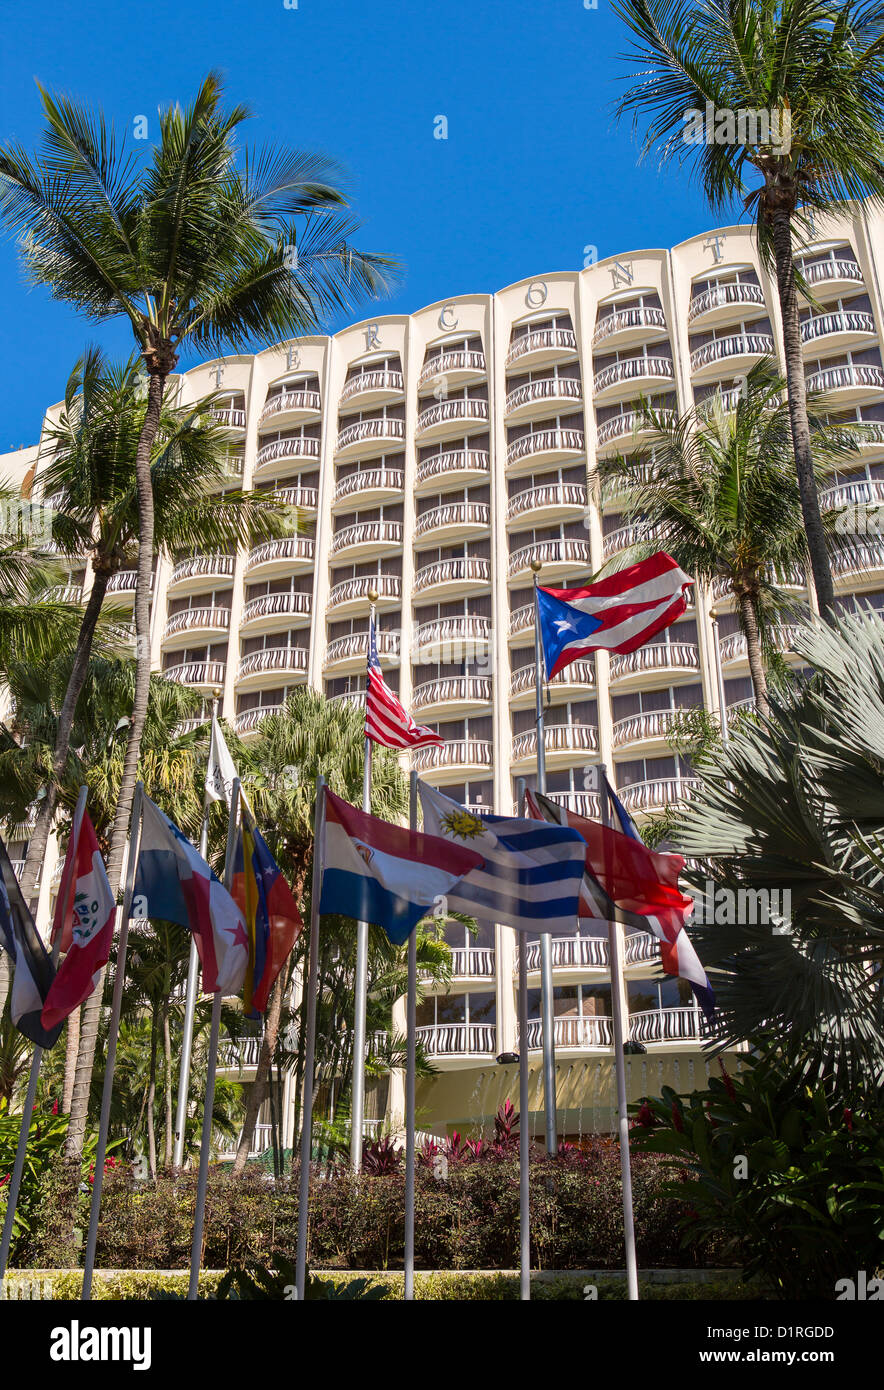 SAN JUAN, PUERTO RICO - The InterContinental Hotel, a beach resort at Isla Verde. - Stock Image